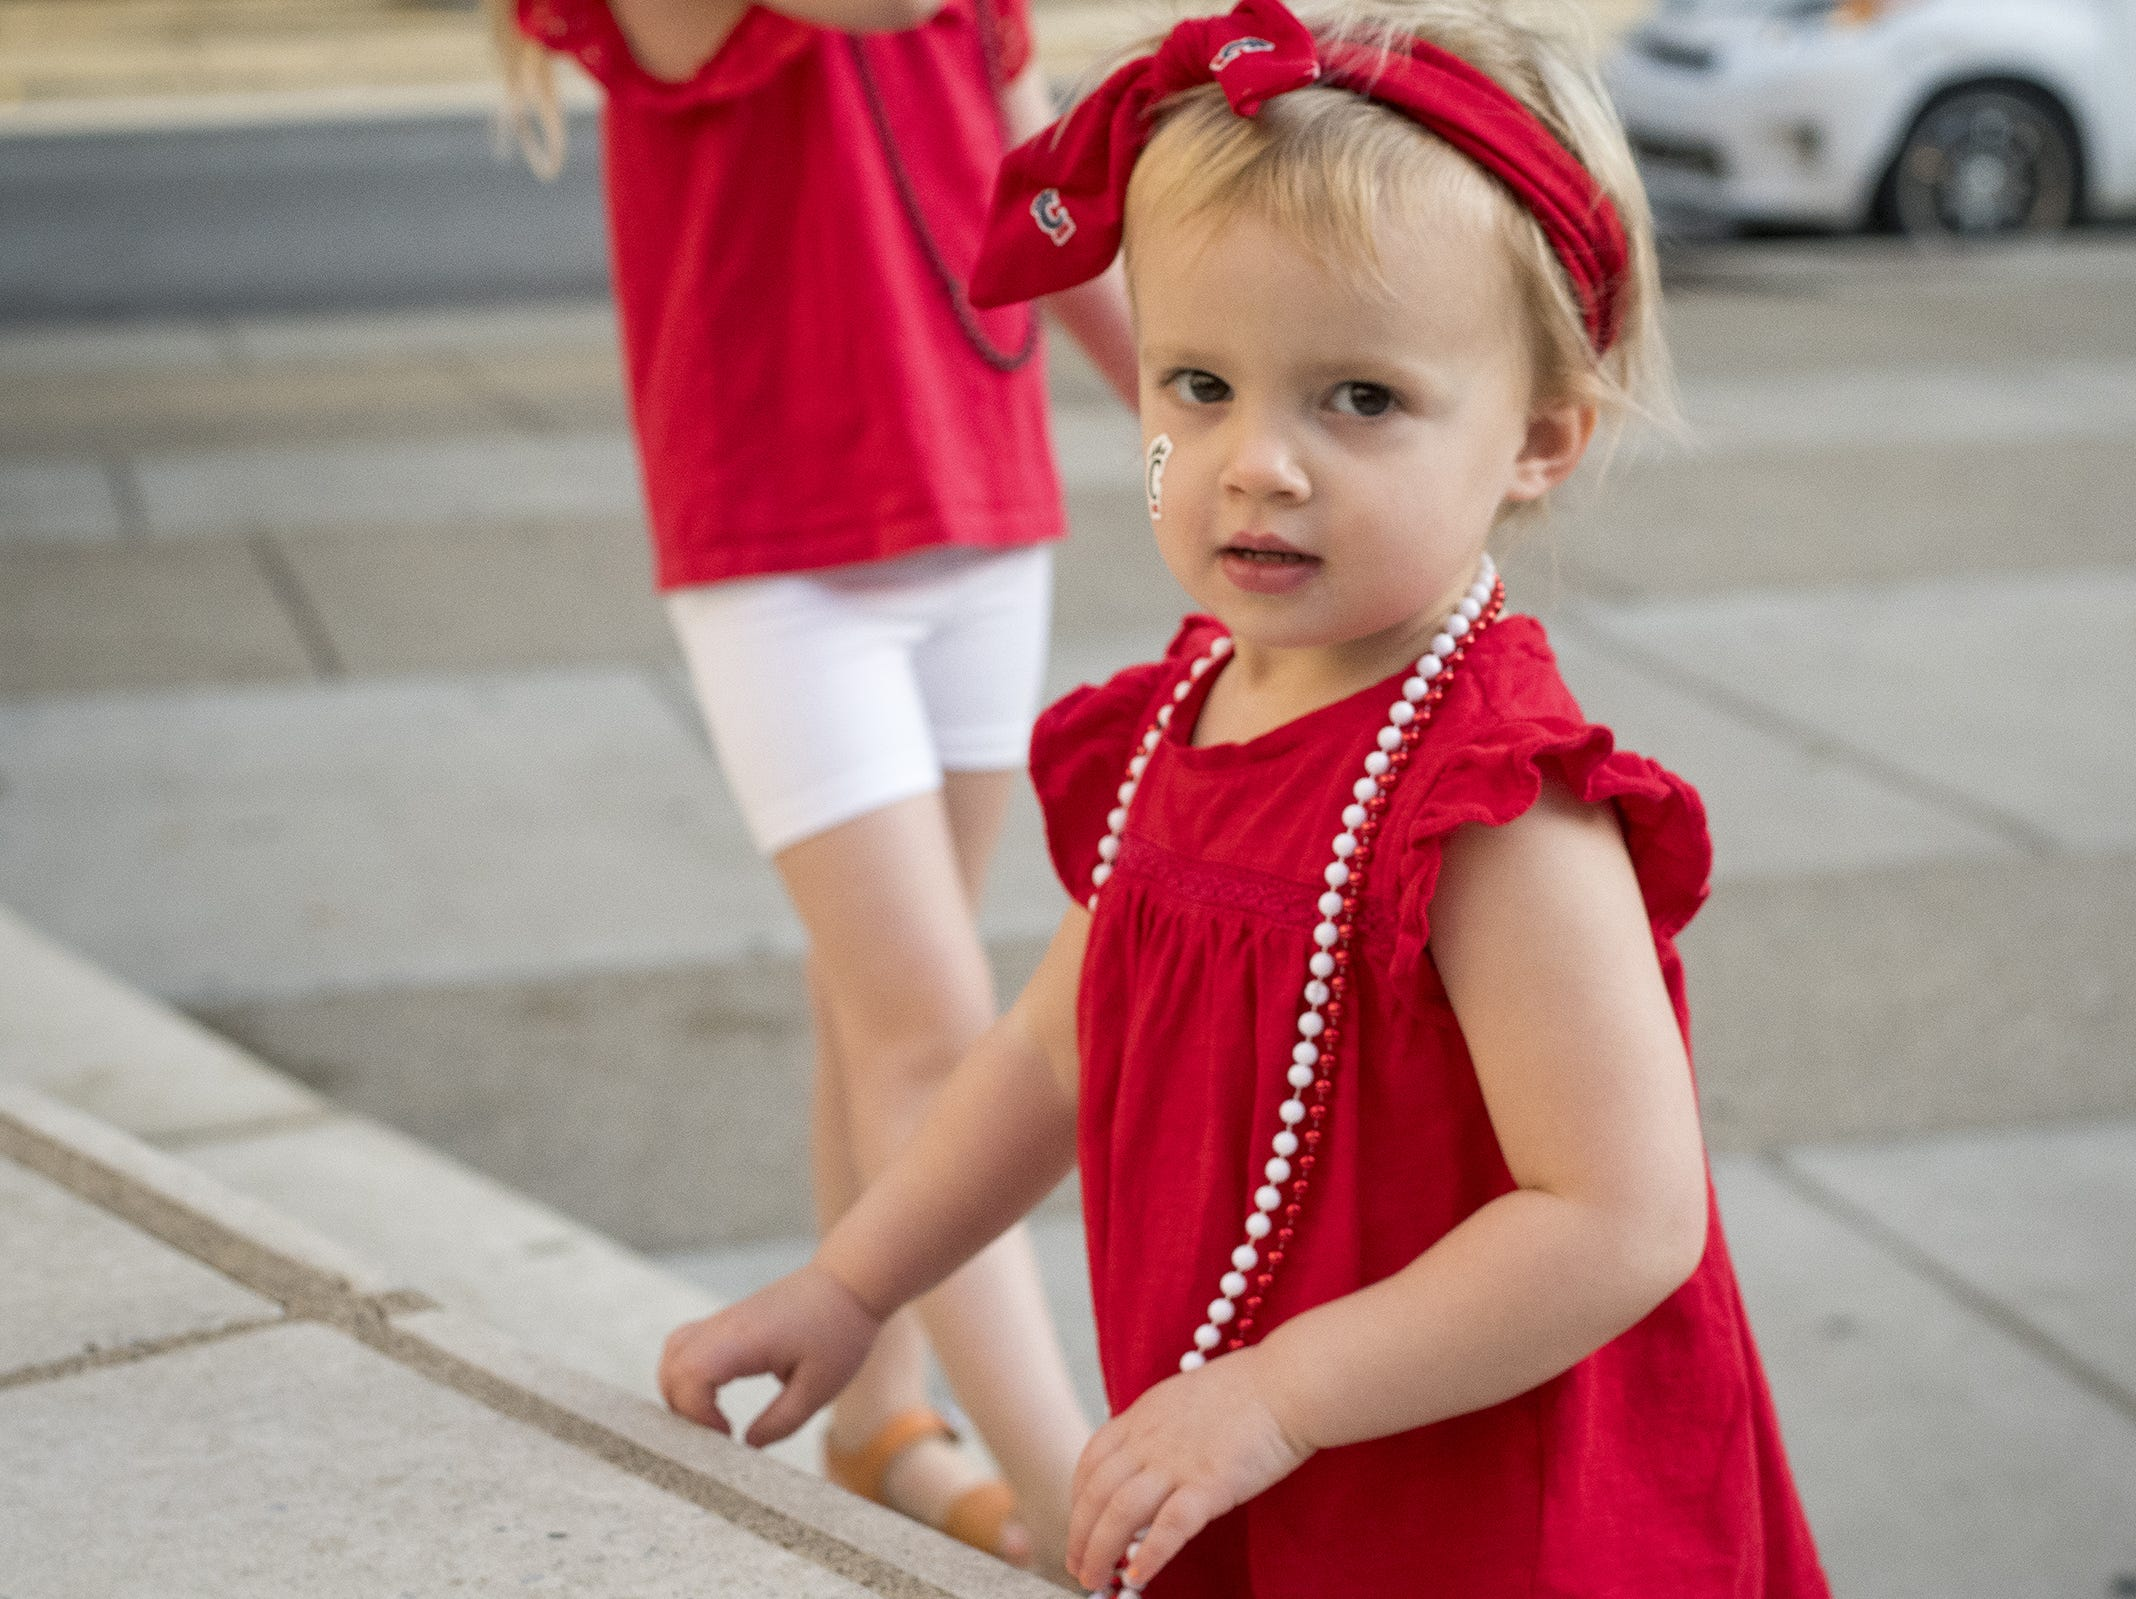 Blair Little, 2, attends the annual University of Cincinnati Homecoming parade.